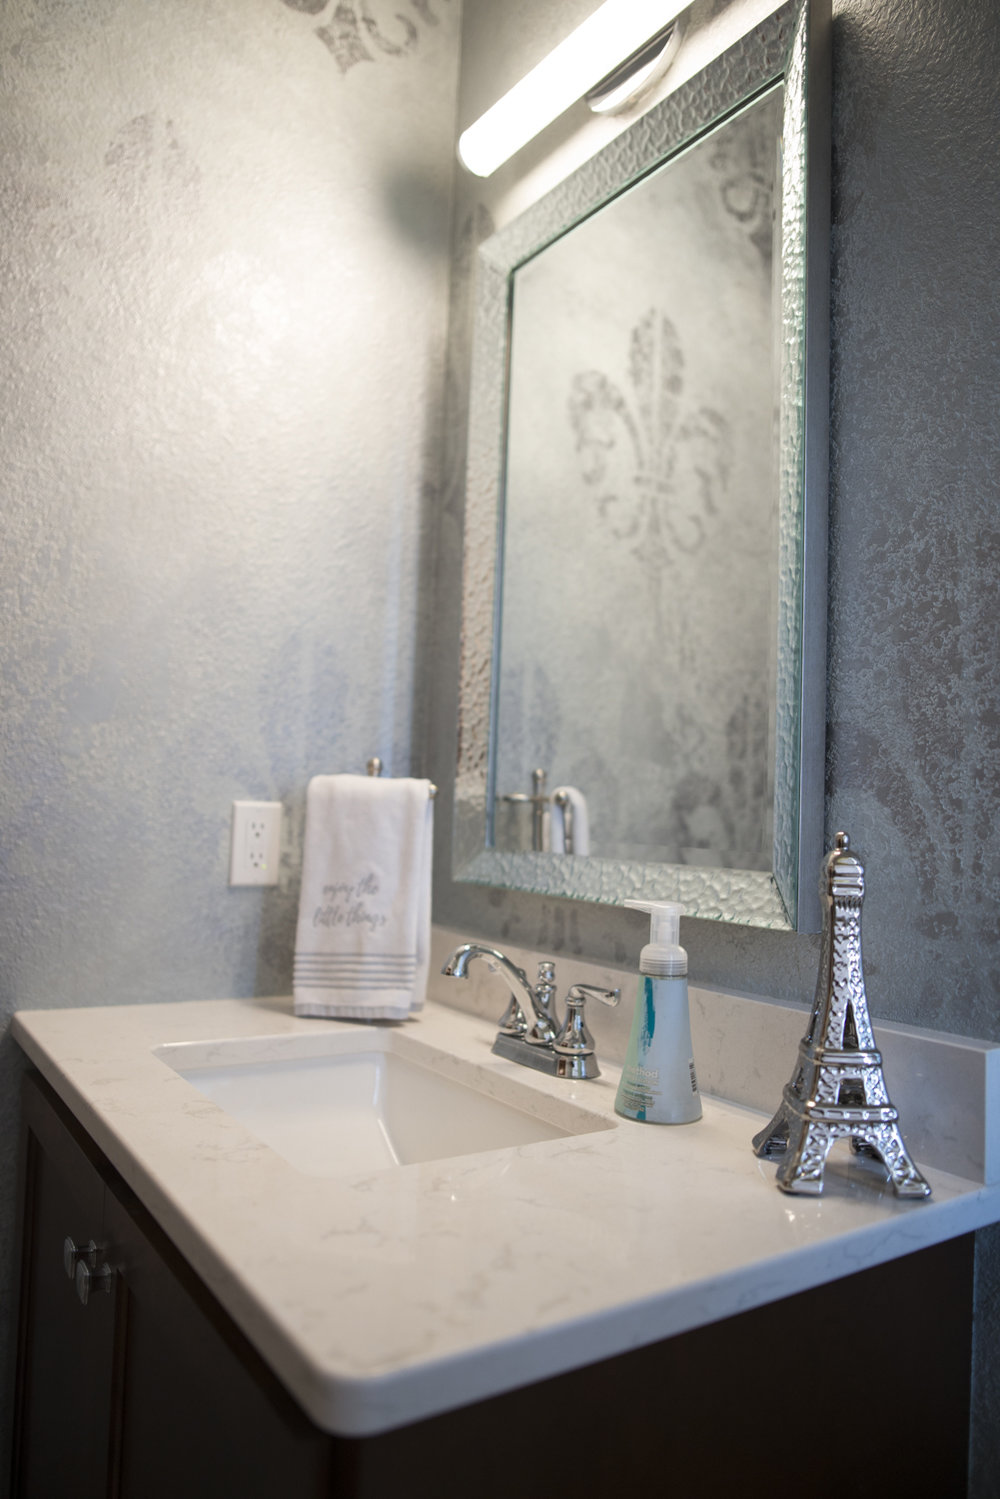 The half-bath walls were supposed to be smooth so they could be wallpapered, but due to a miscommunication with the builder it ended up with textured walls.  No problem, Maranda hired local paint artist, Caren Brumleve, to paint this effect on the wall.